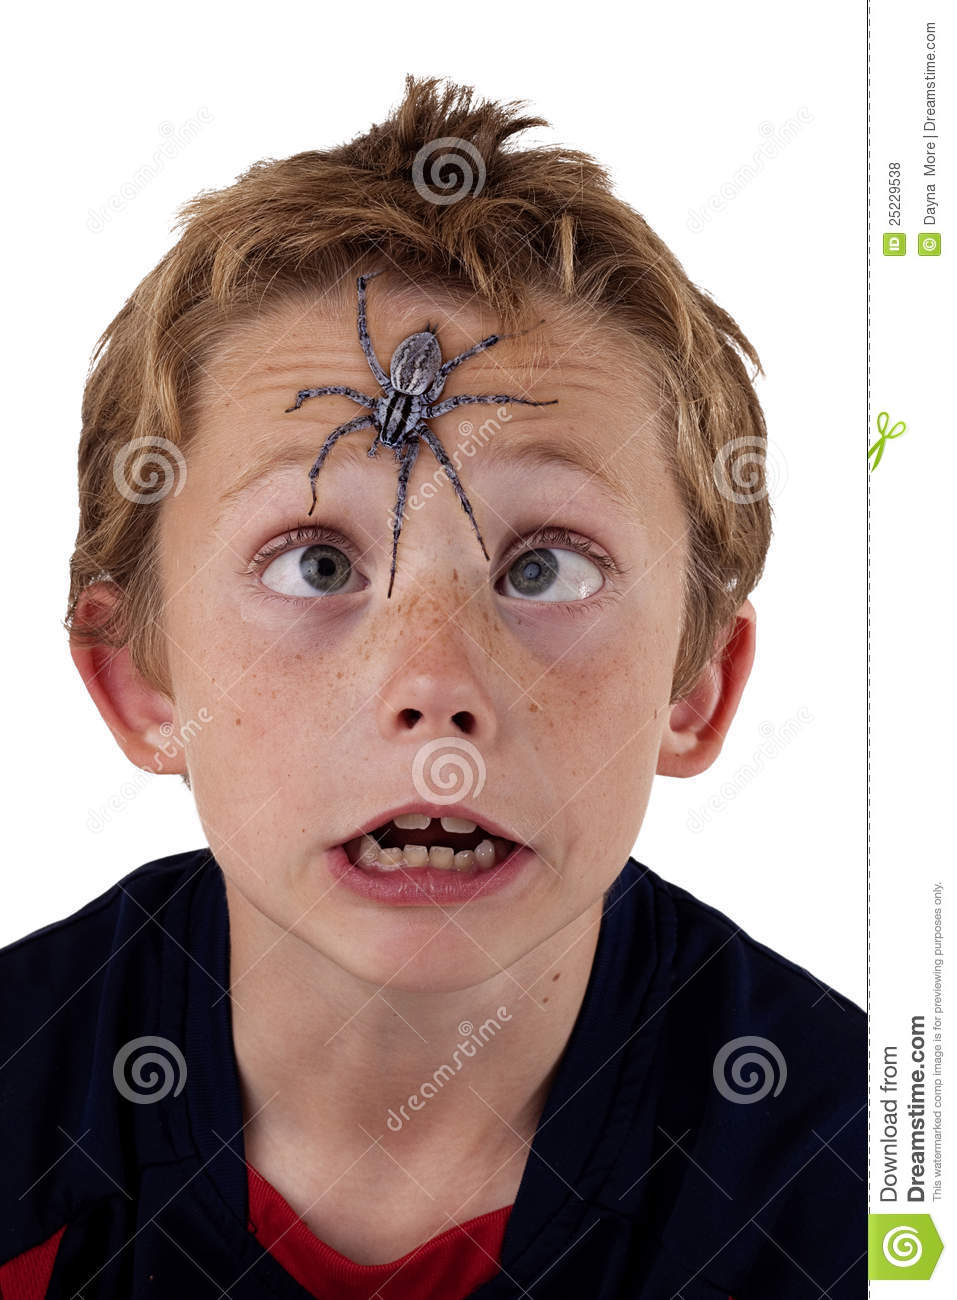 Frightened Boy With Spider Royalty Free Stock Photos - Image: 25229538